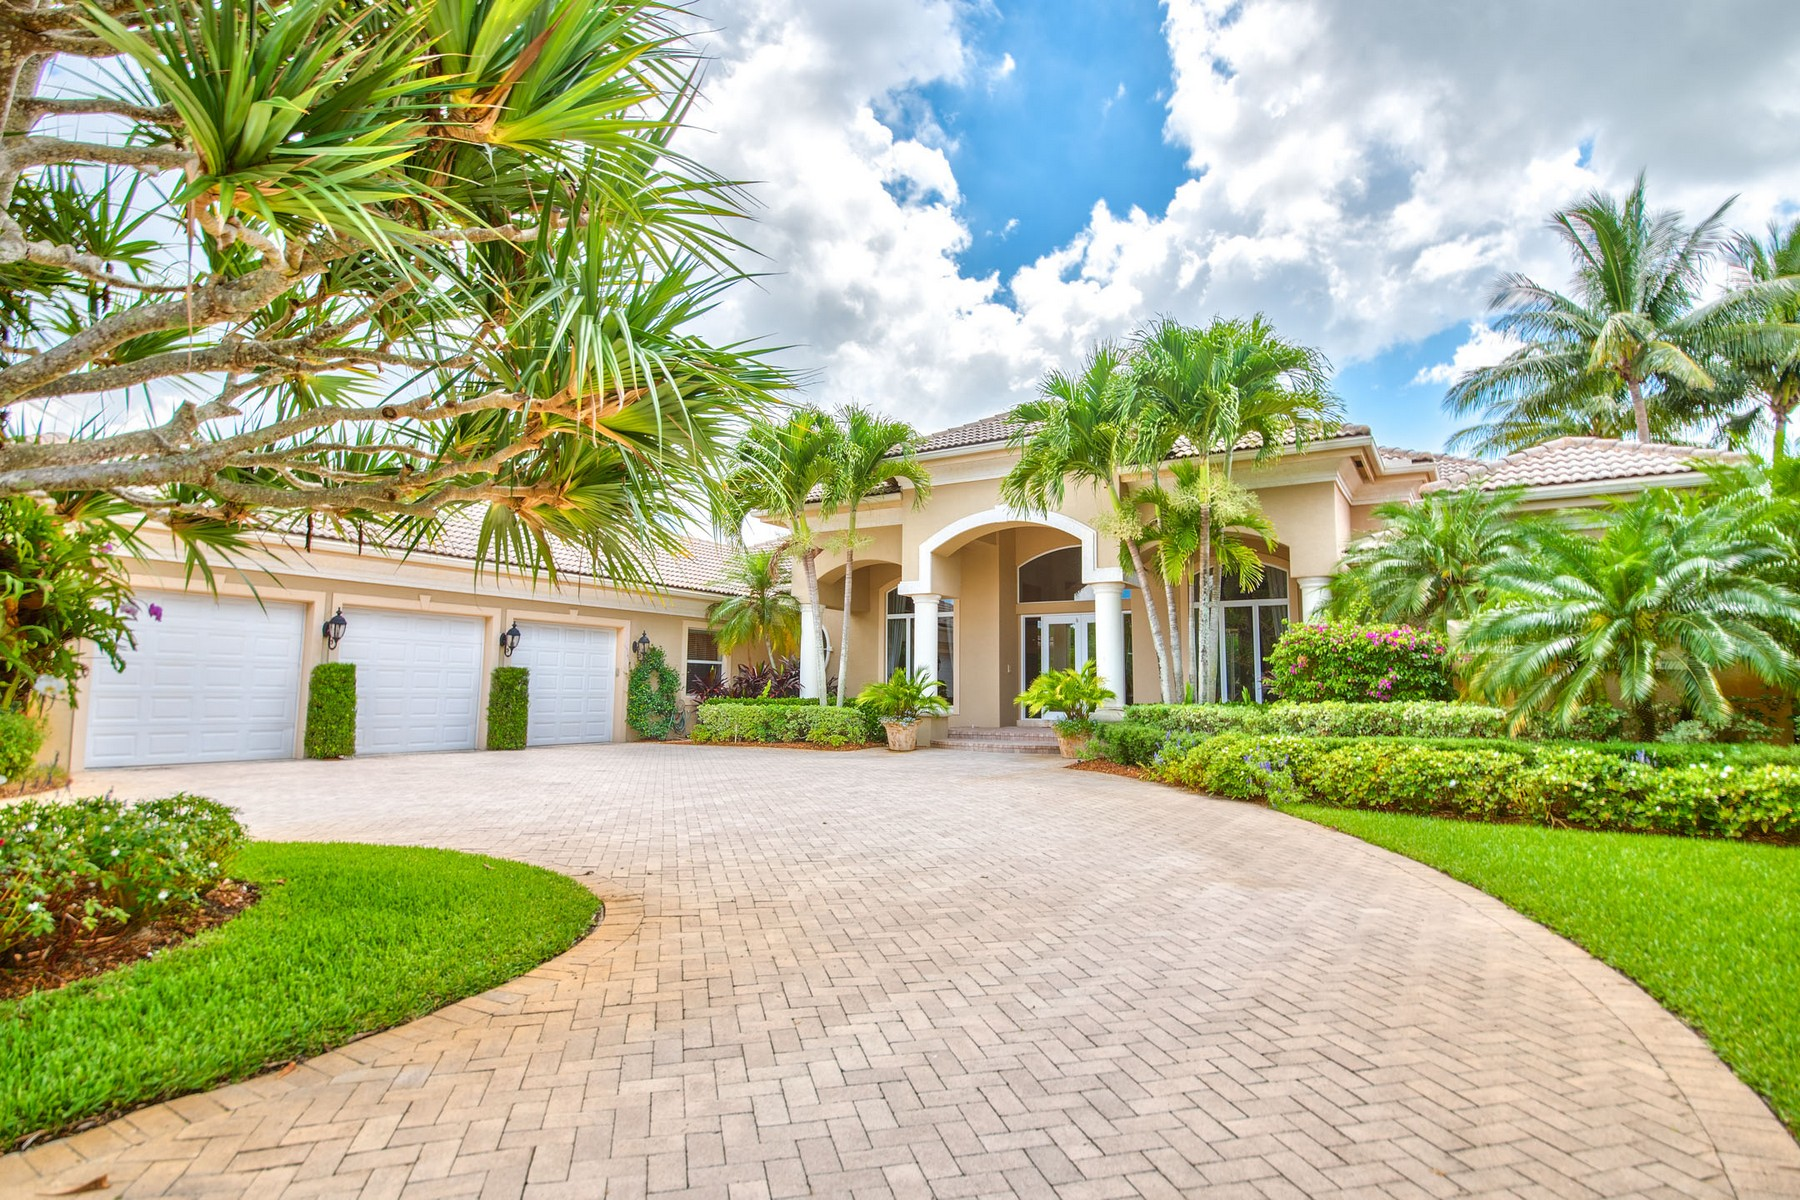 Single Family Home for Sale at 3460 Ambassador Drive Equestrian Club Estates, Wellington, Florida, 33414 United States